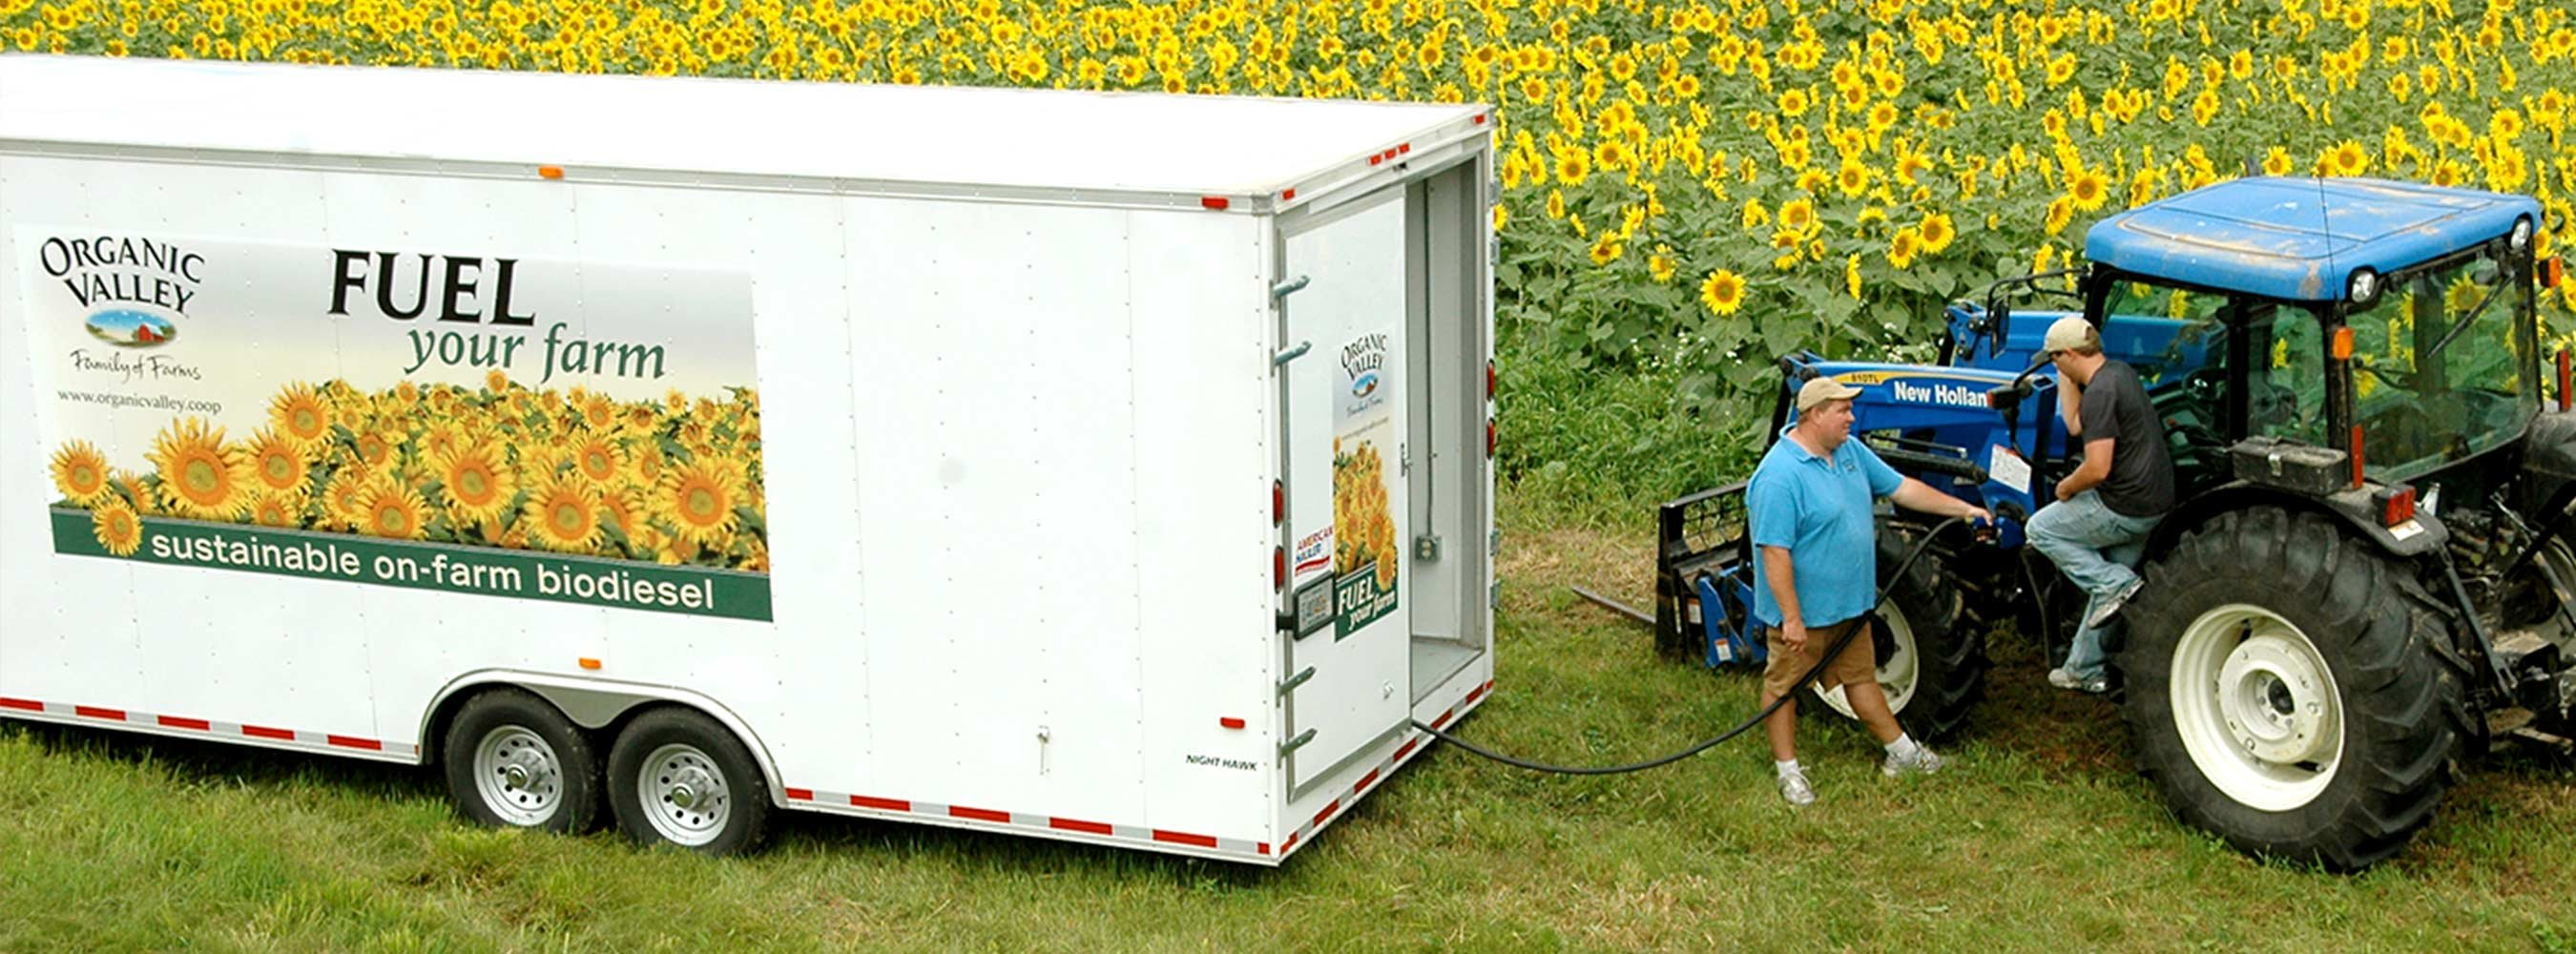 A farmer getting his tractor refueled with sustainable on-farm biodiesel in front of a field of sunflowers.